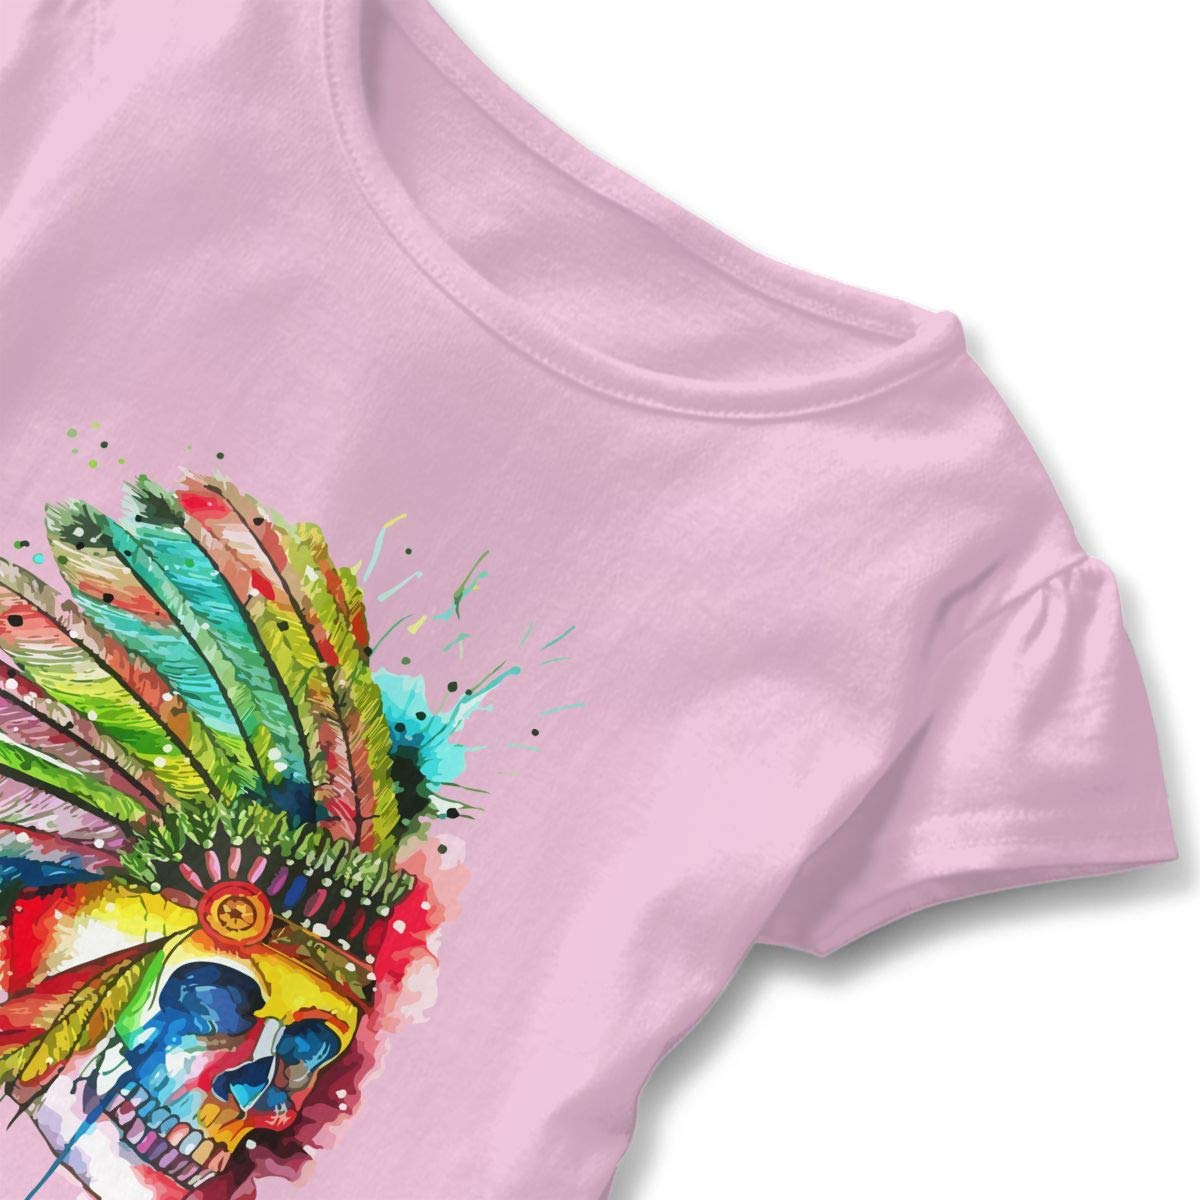 Clarissa Bertha American Indian Skull Toddler Baby Girls Short Sleeve Ruffle T-Shirt